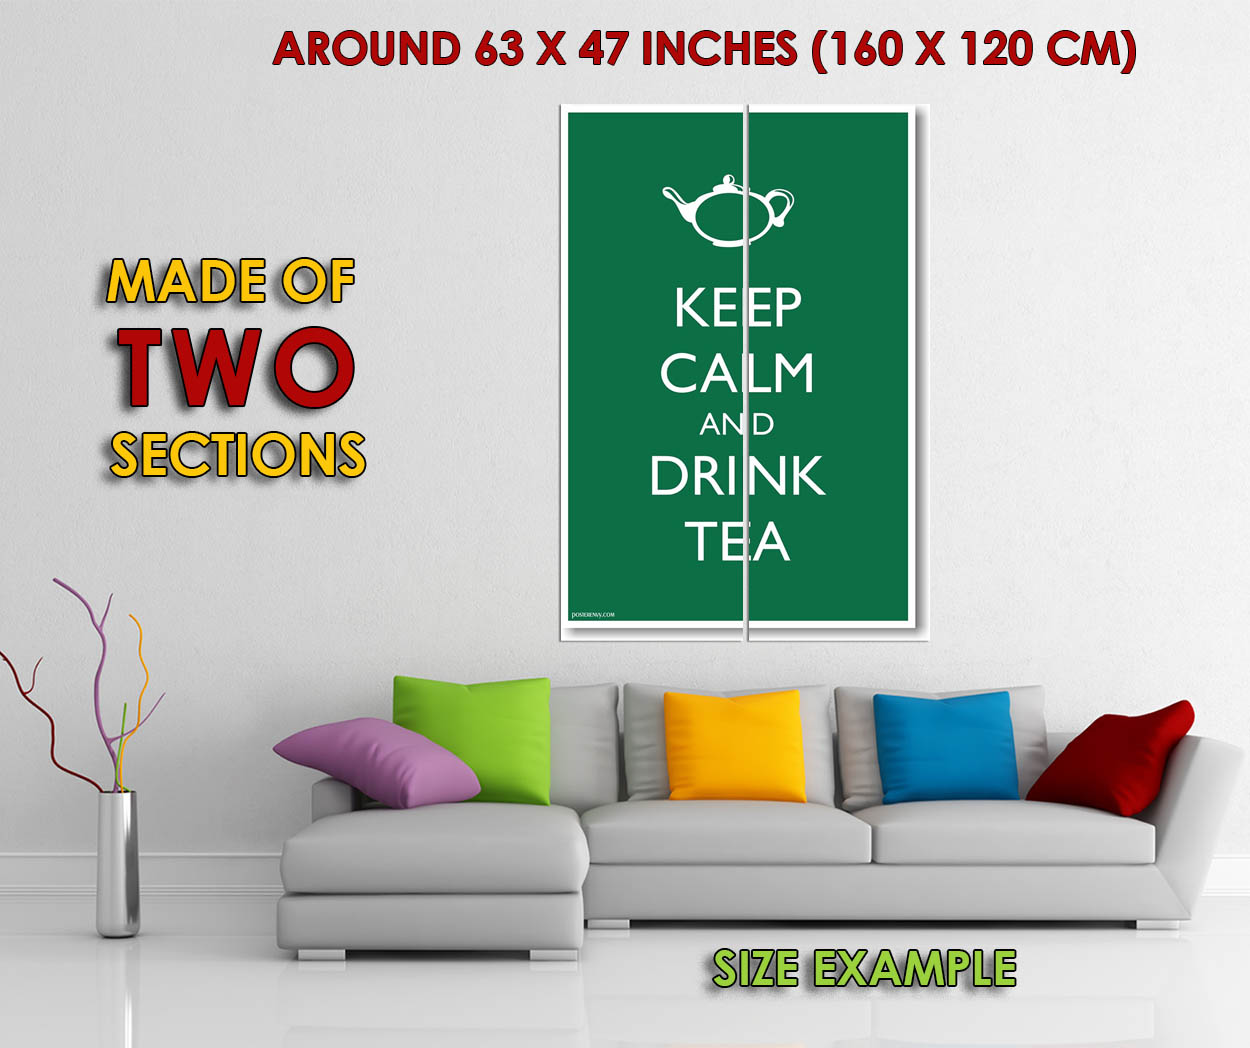 173802-Keep-Calm-and-Drink-Tea-Green-Background-Humor-WALL-PRINT-POSTER-FR miniature 6